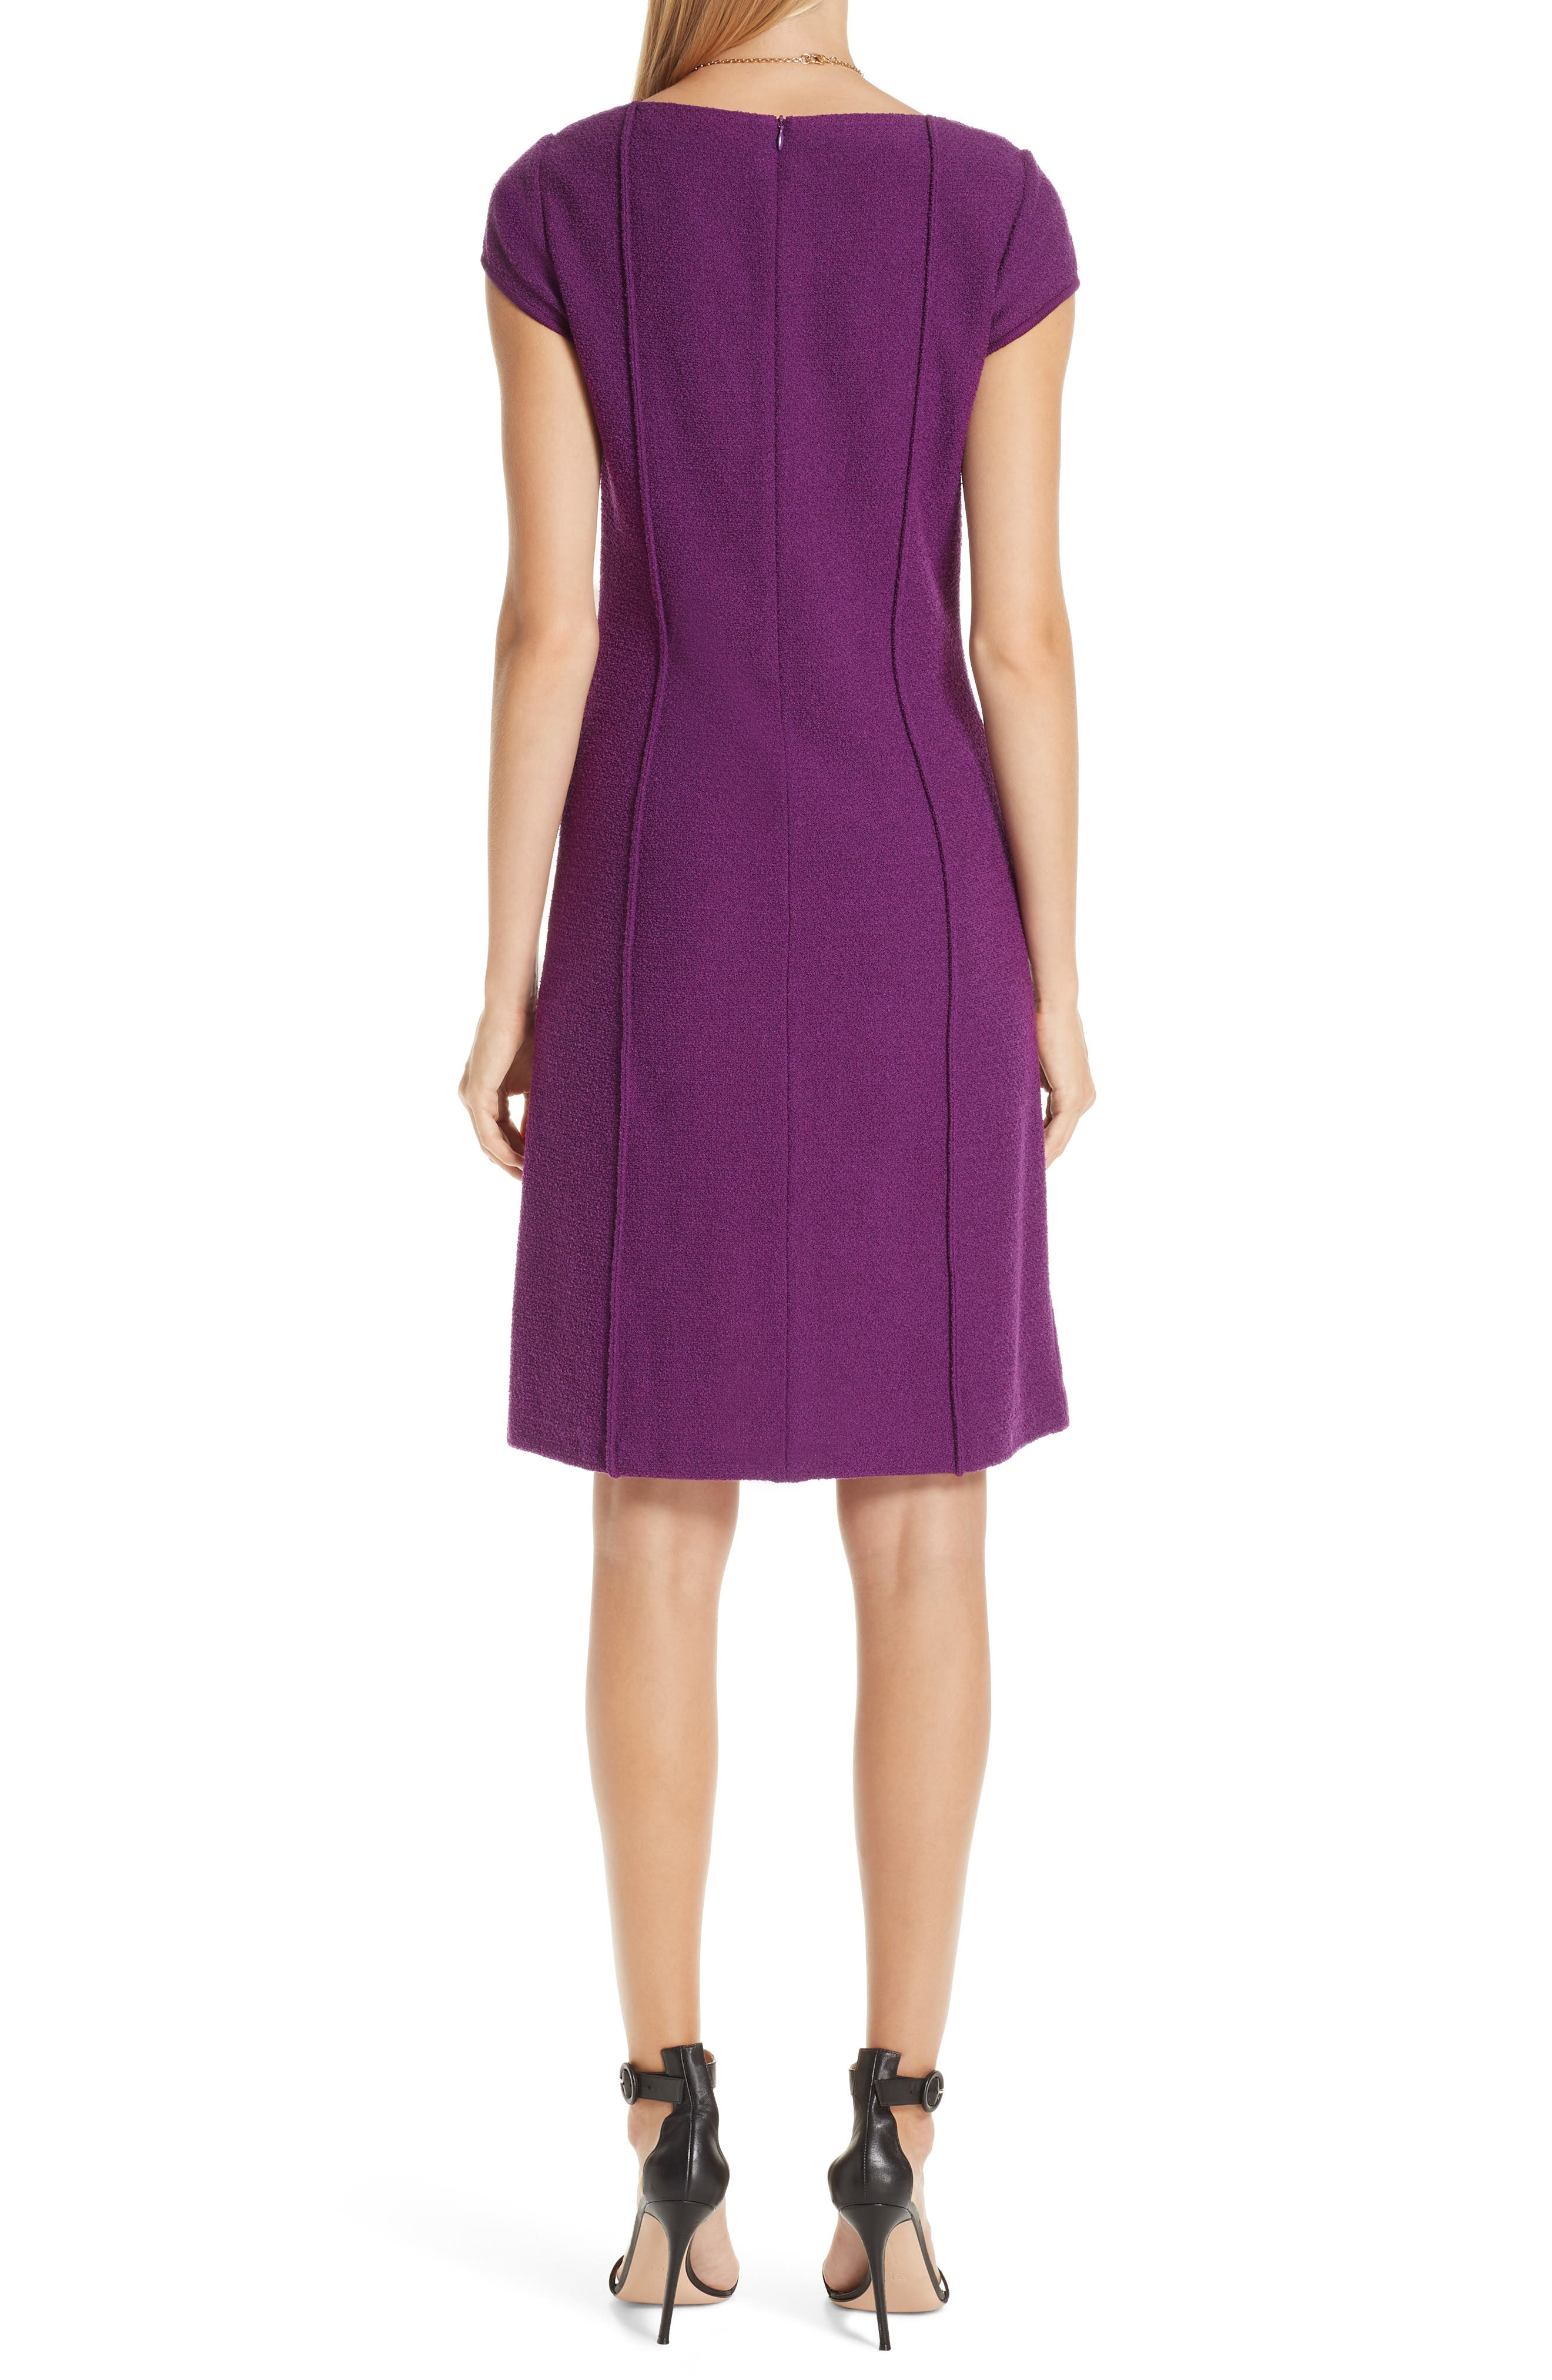 ST. JOHN COLLECTION, Ana Bouclé Knit Dress, Main thumbnail 1, color, IRIS